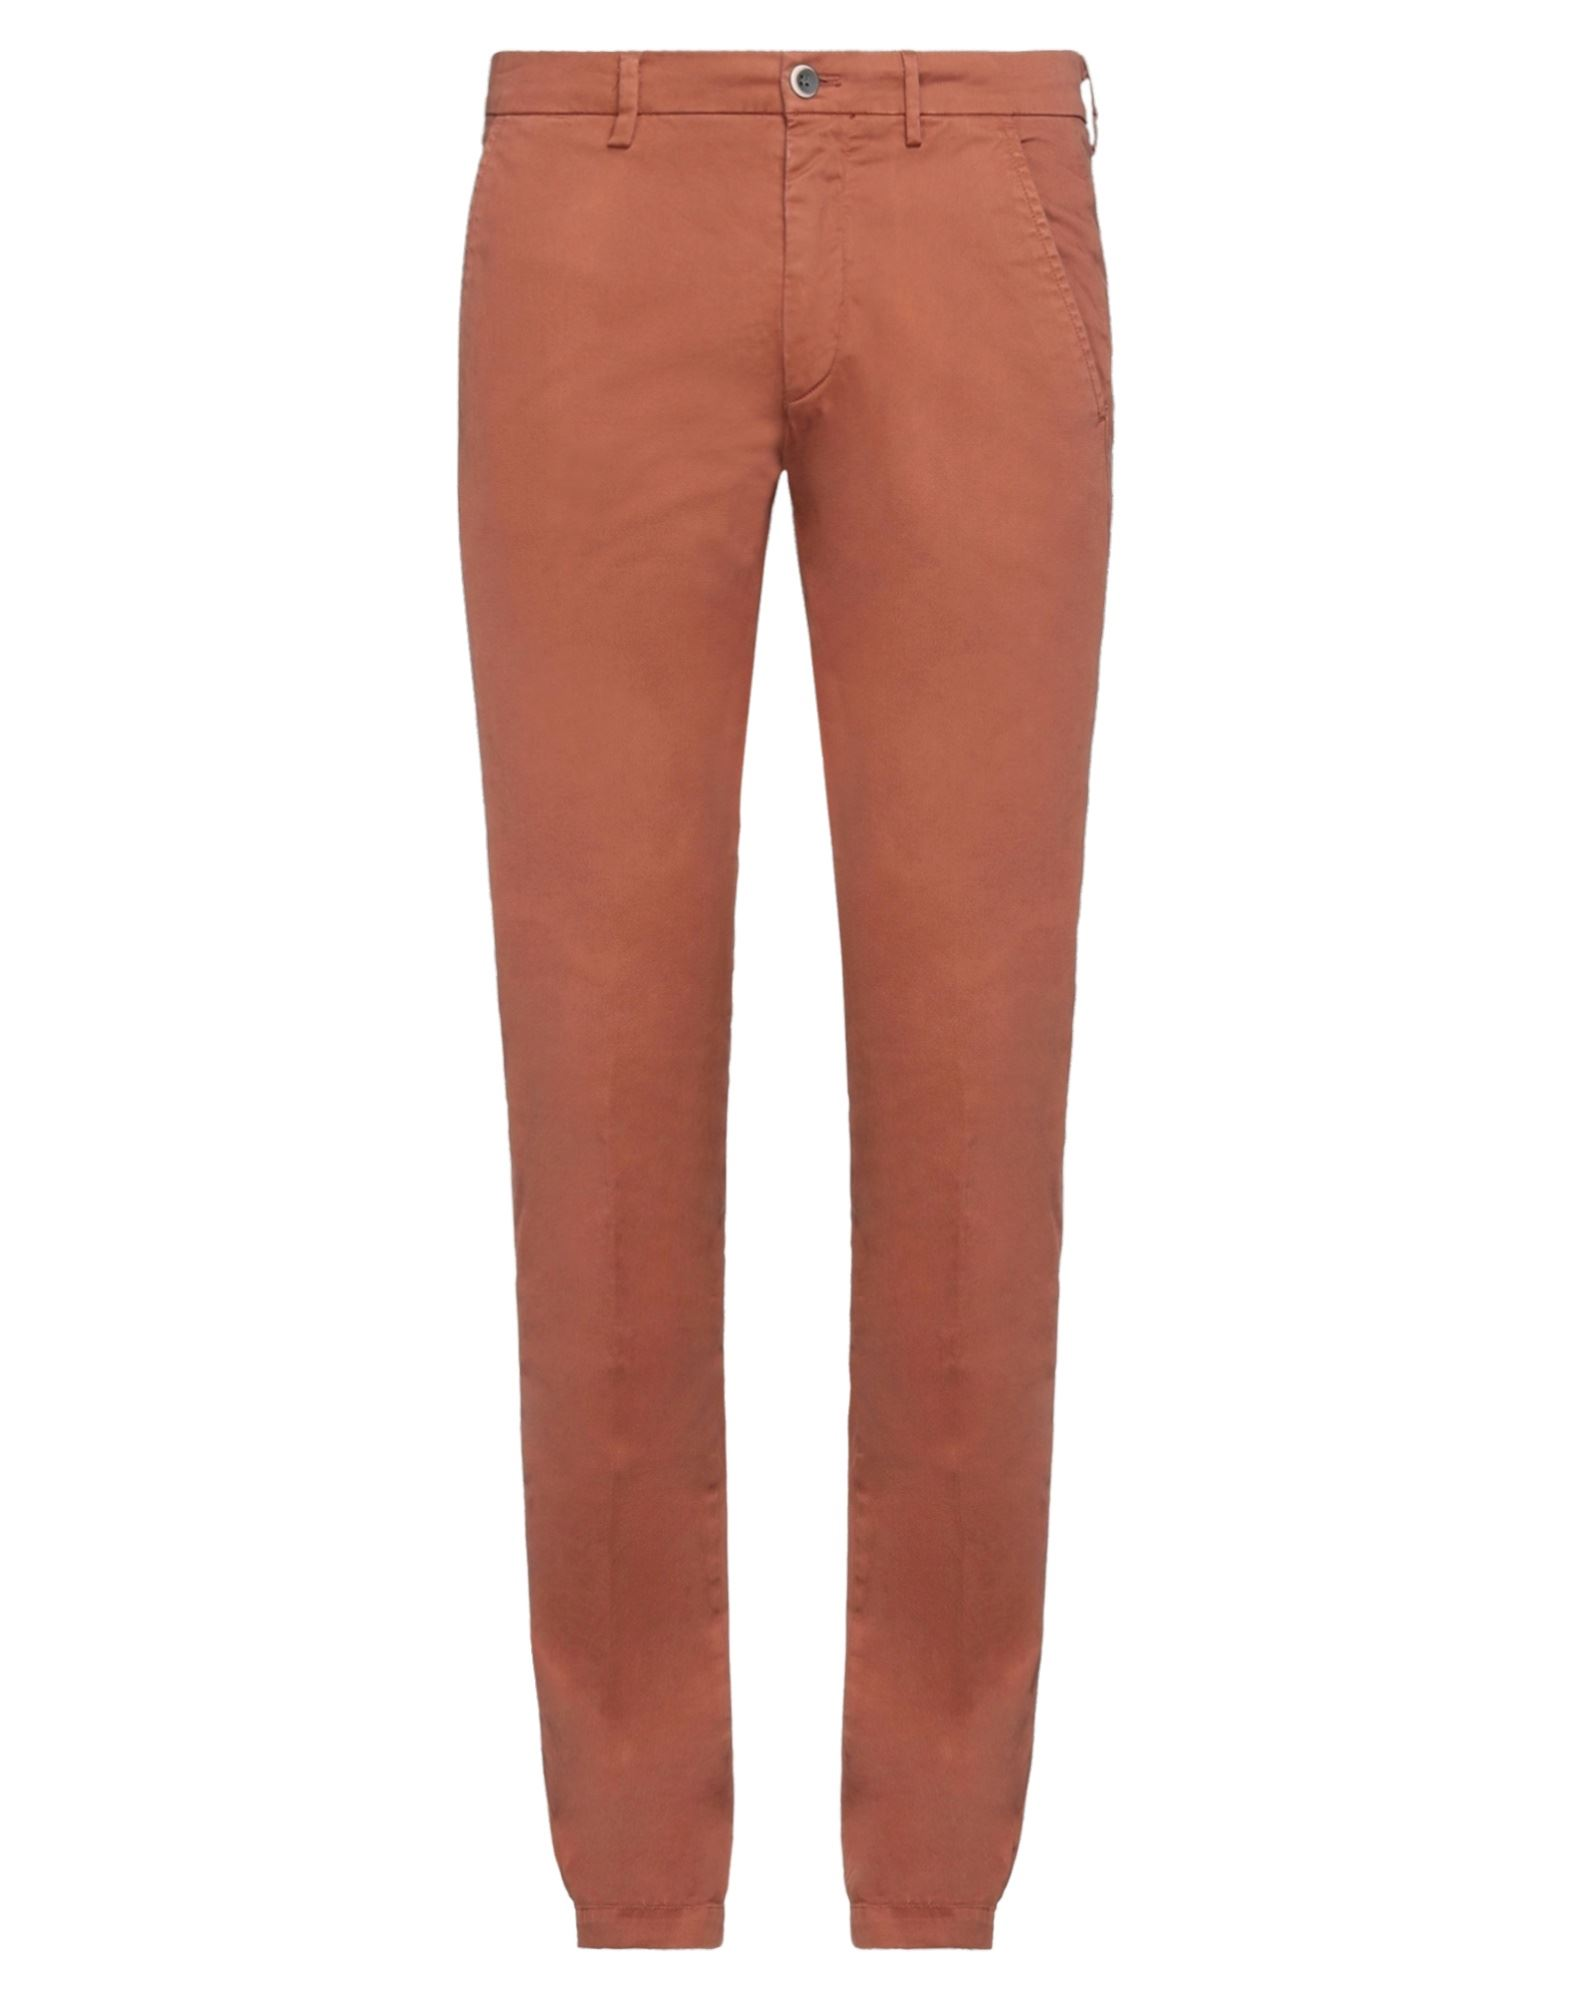 Mason's Casual Pants In Brown